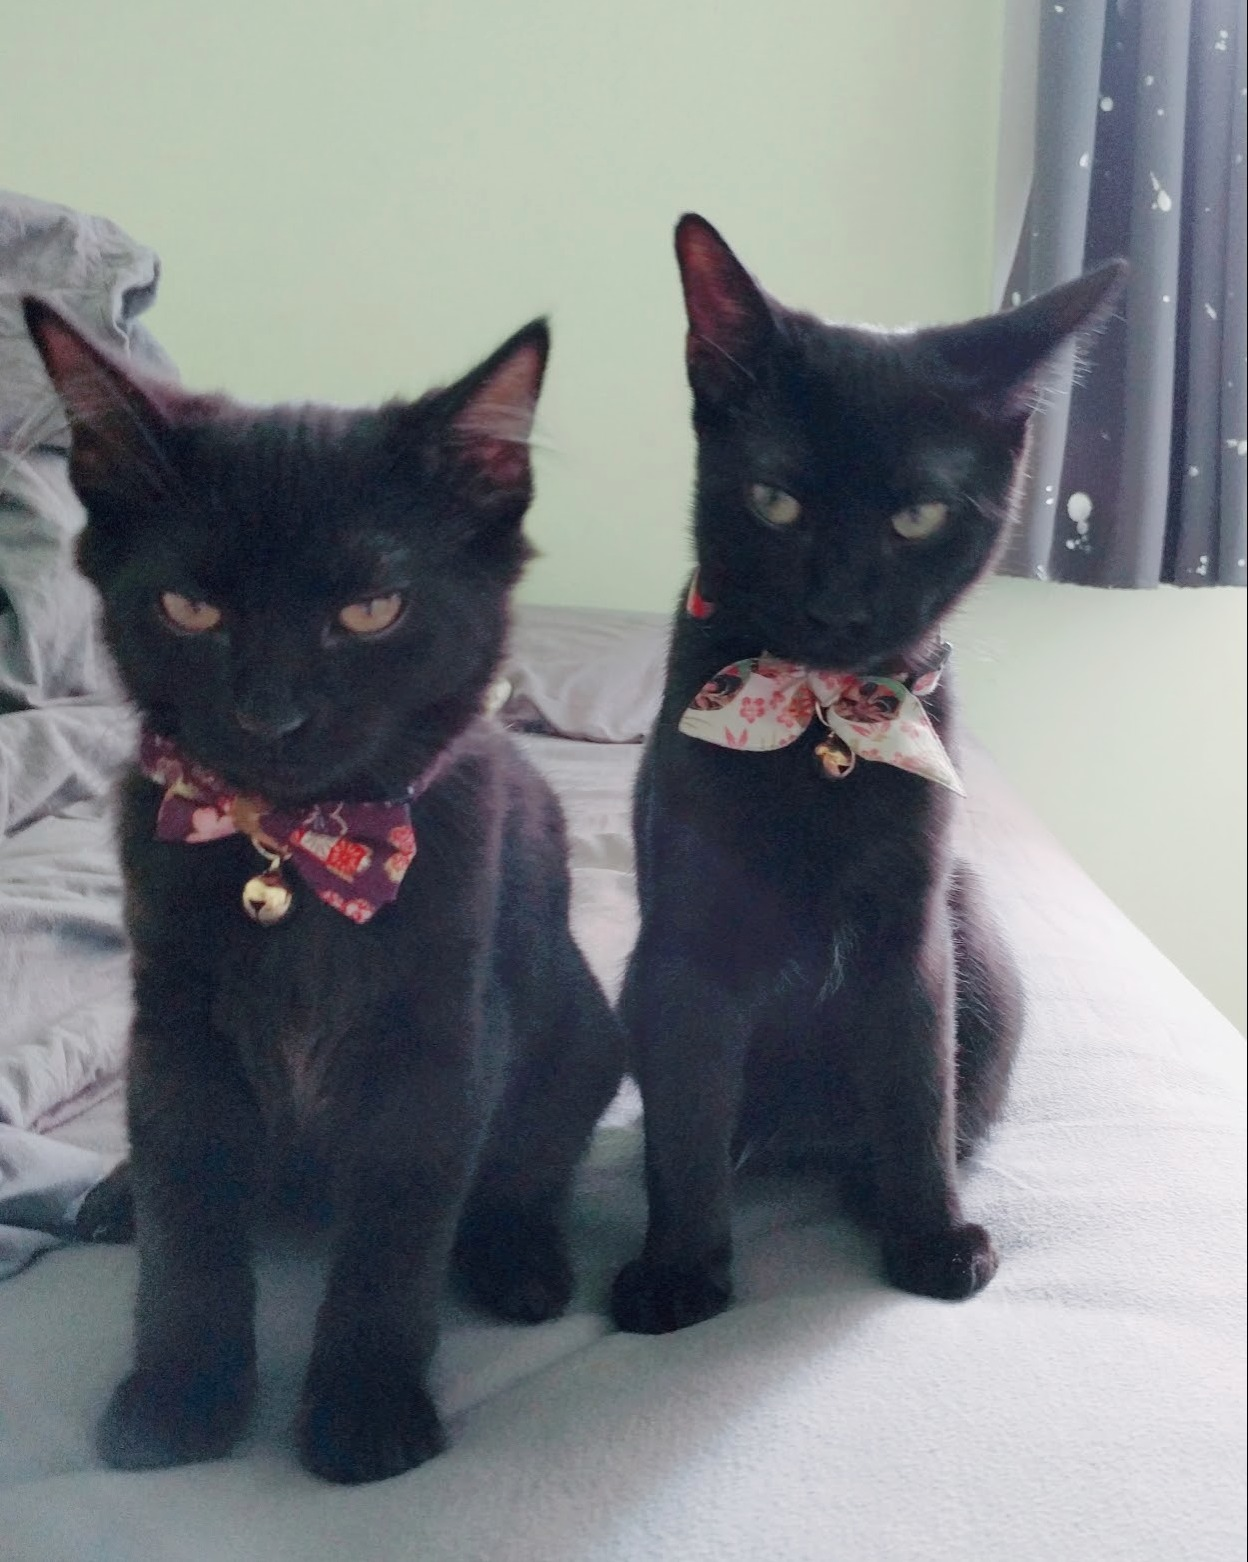 When your cats are tired of posing for pictures. x post rblackcats